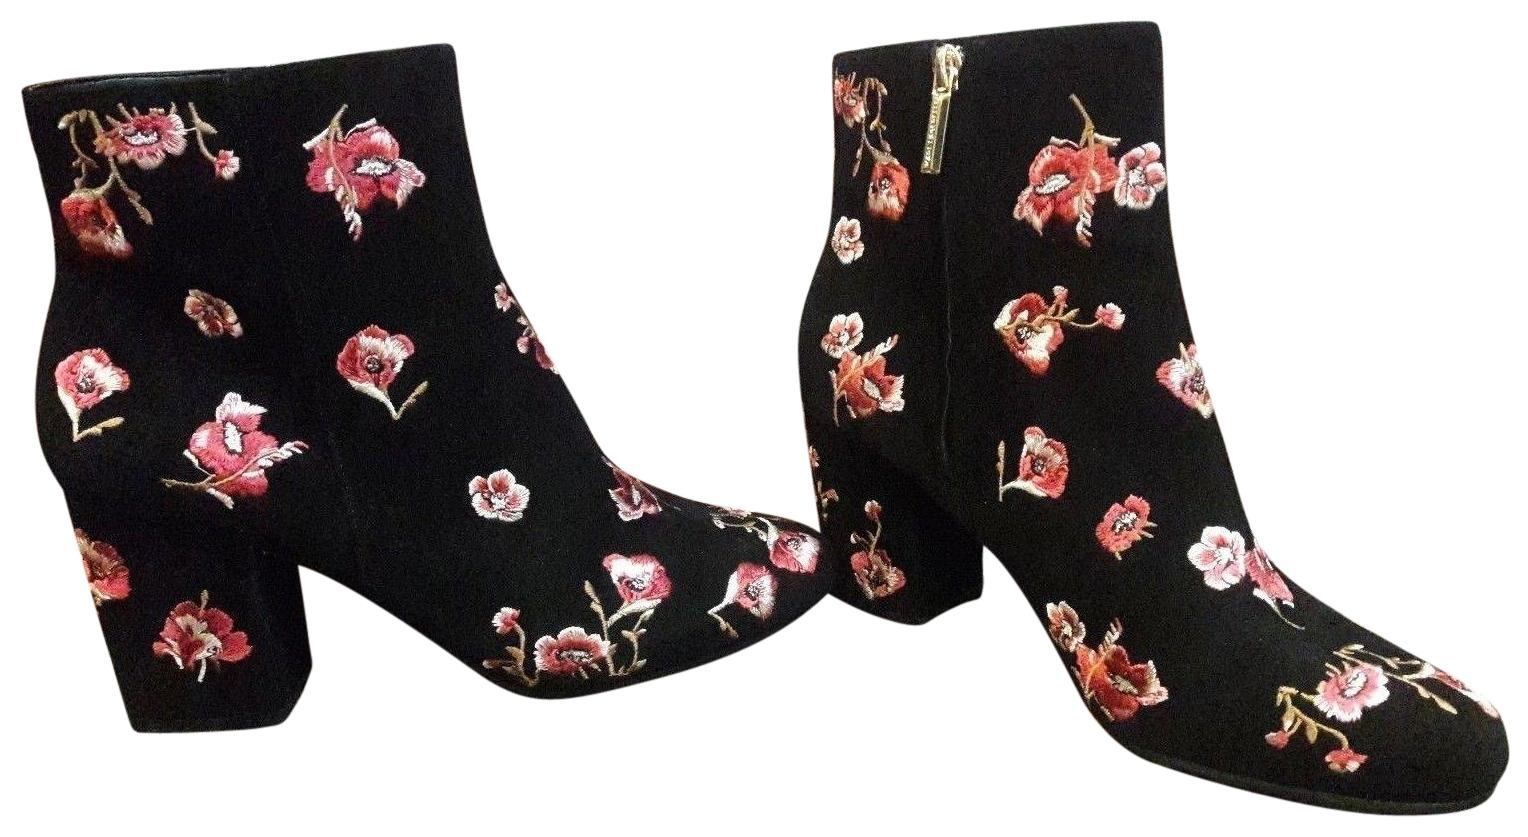 Karl Lagerfeld Black & Pink Floral Paris Edith Ankle Womens Embriodered Flowers Boots/Booties Size US 8.5 Regular (M, B)